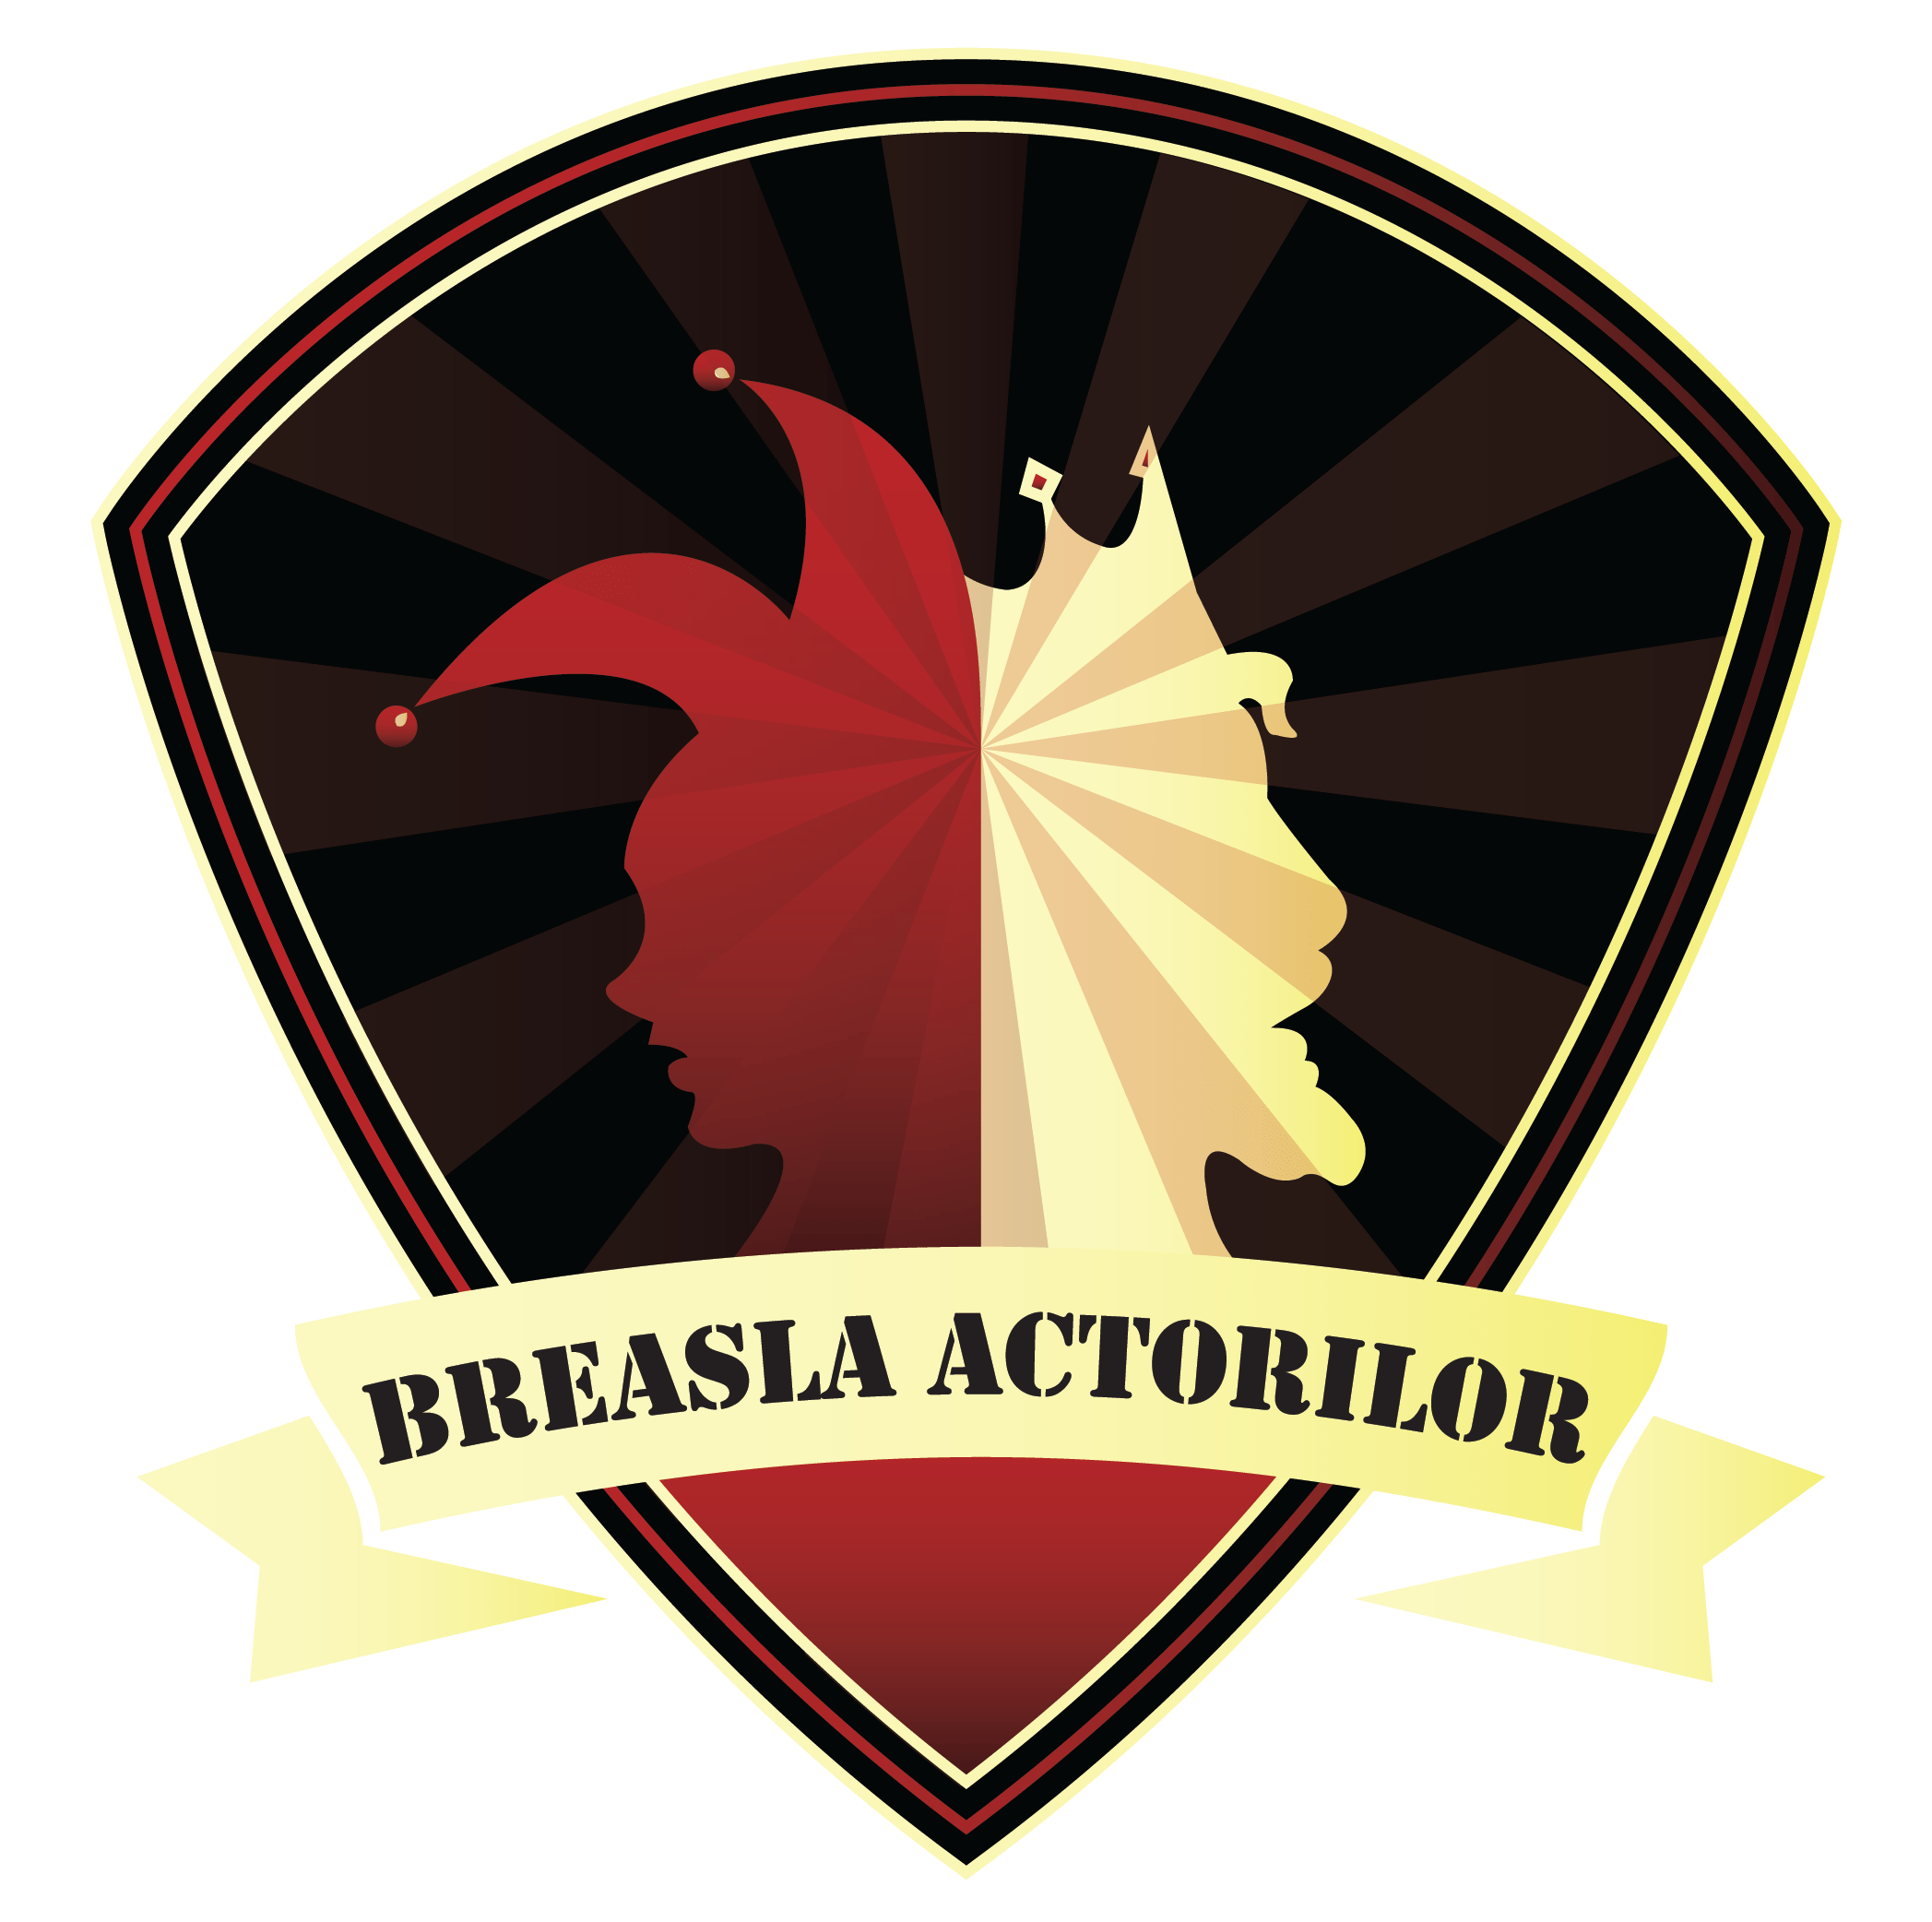 Breasla Actorilor